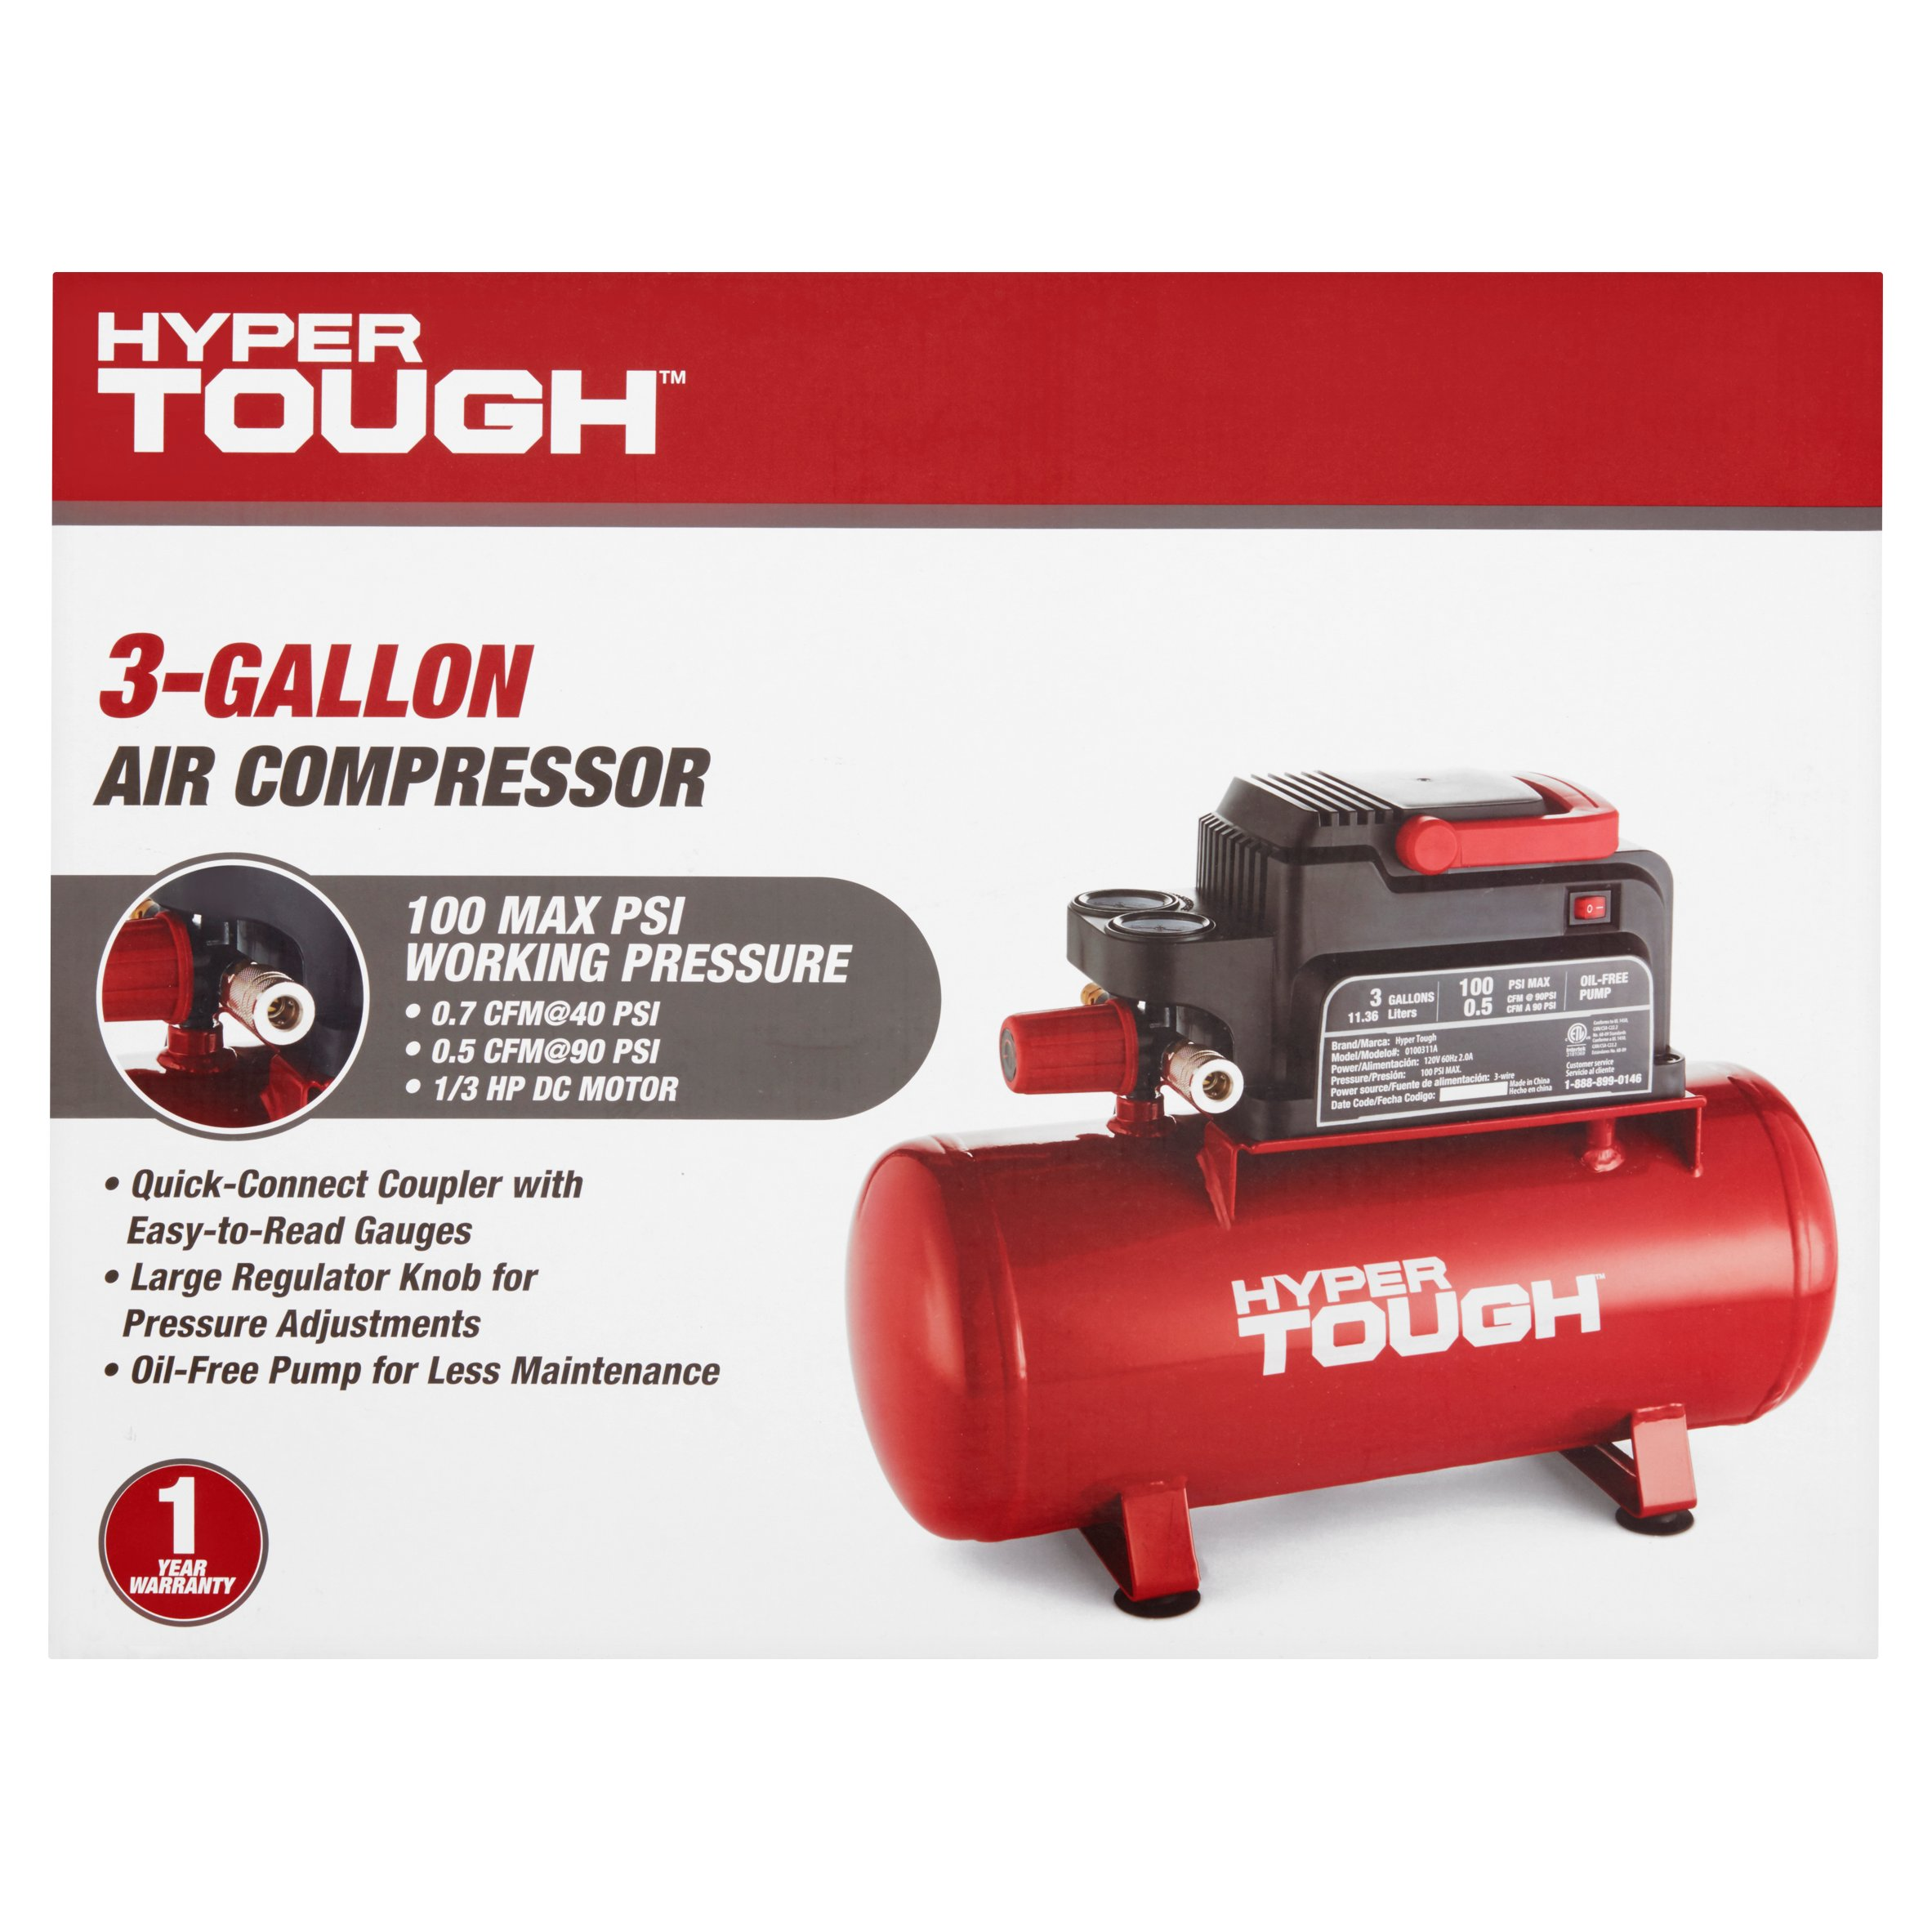 Hyper Tough 3-Gallon Air Compressor